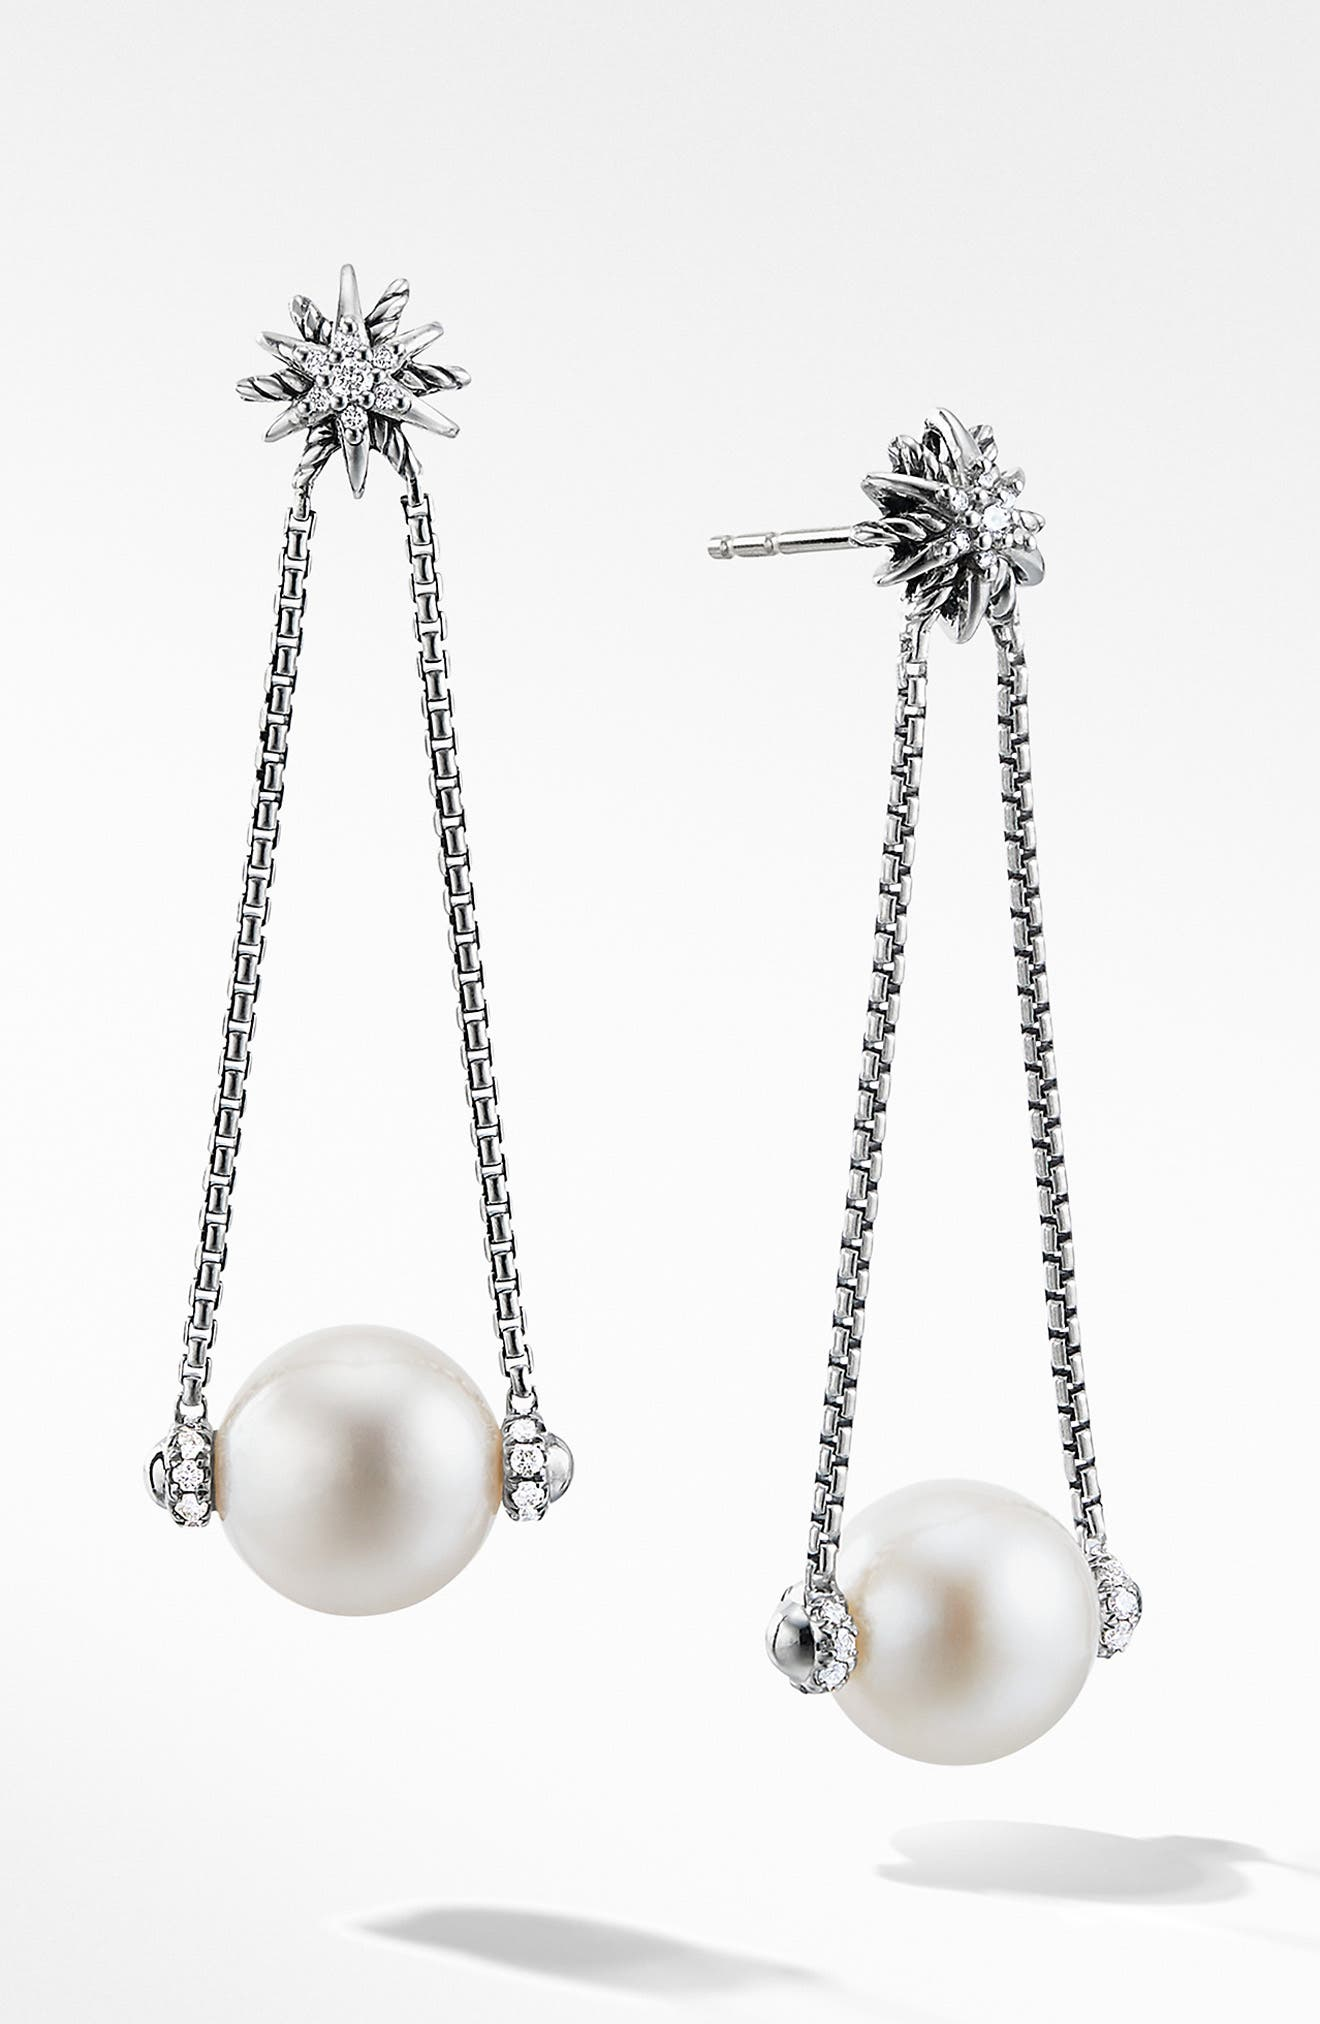 Starburst Pearl Drop Earrings with Diamonds,                             Main thumbnail 1, color,                             PEARL